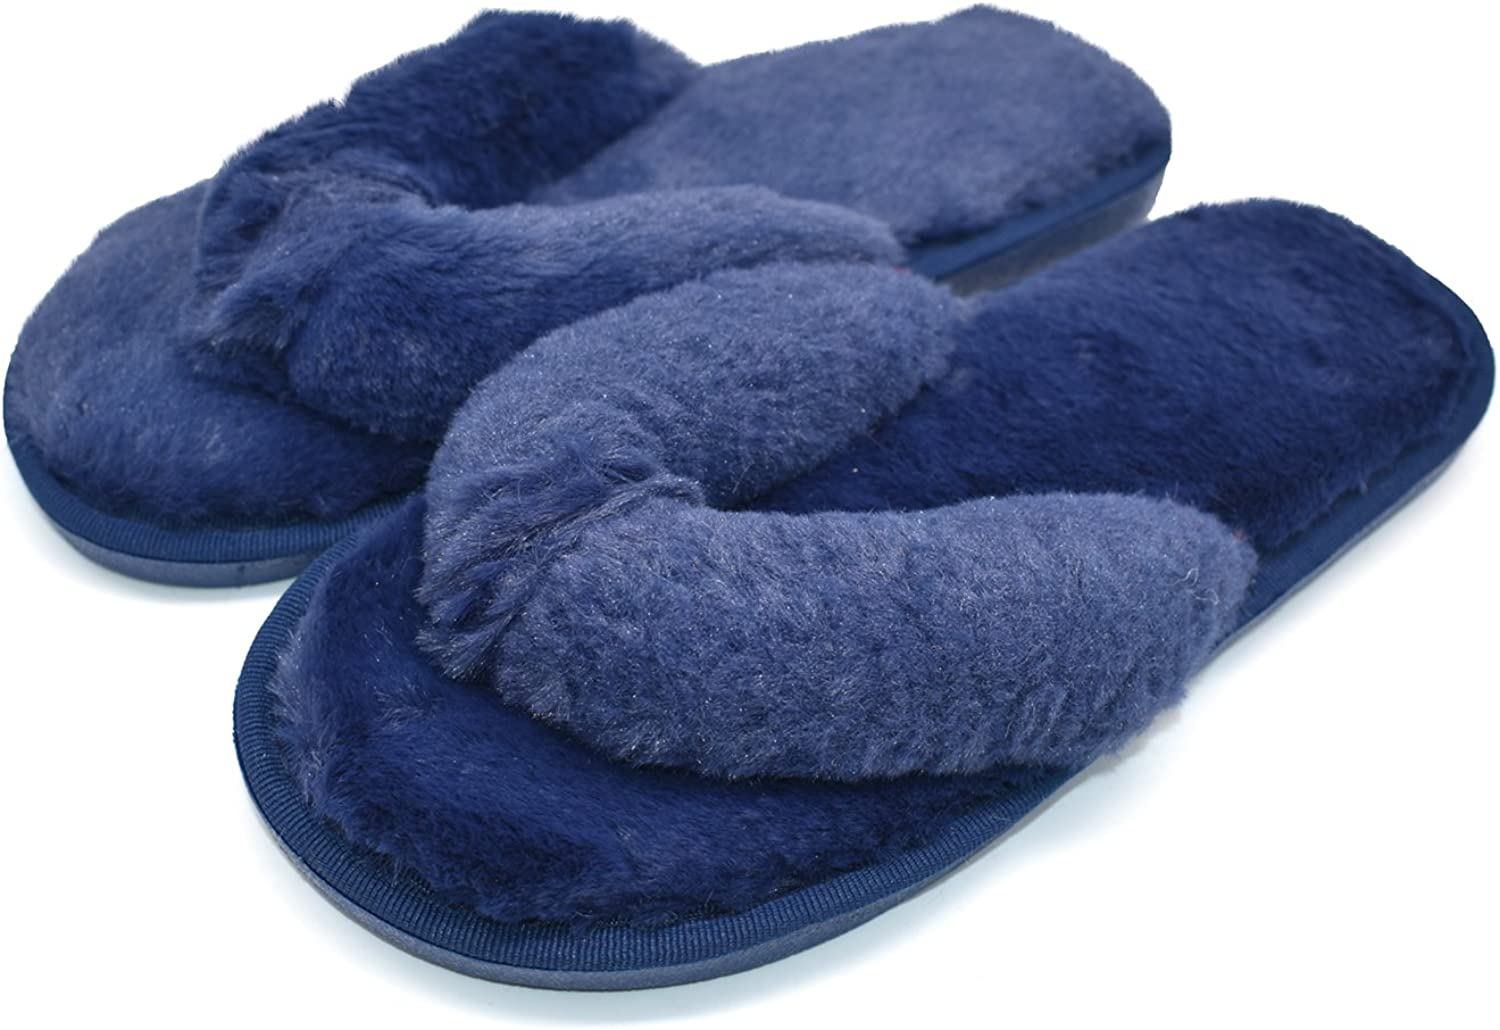 Coface Fashion Plush Flip-Flops Soft Home Indoor Spa Bedroom Slippers shoes for Womens